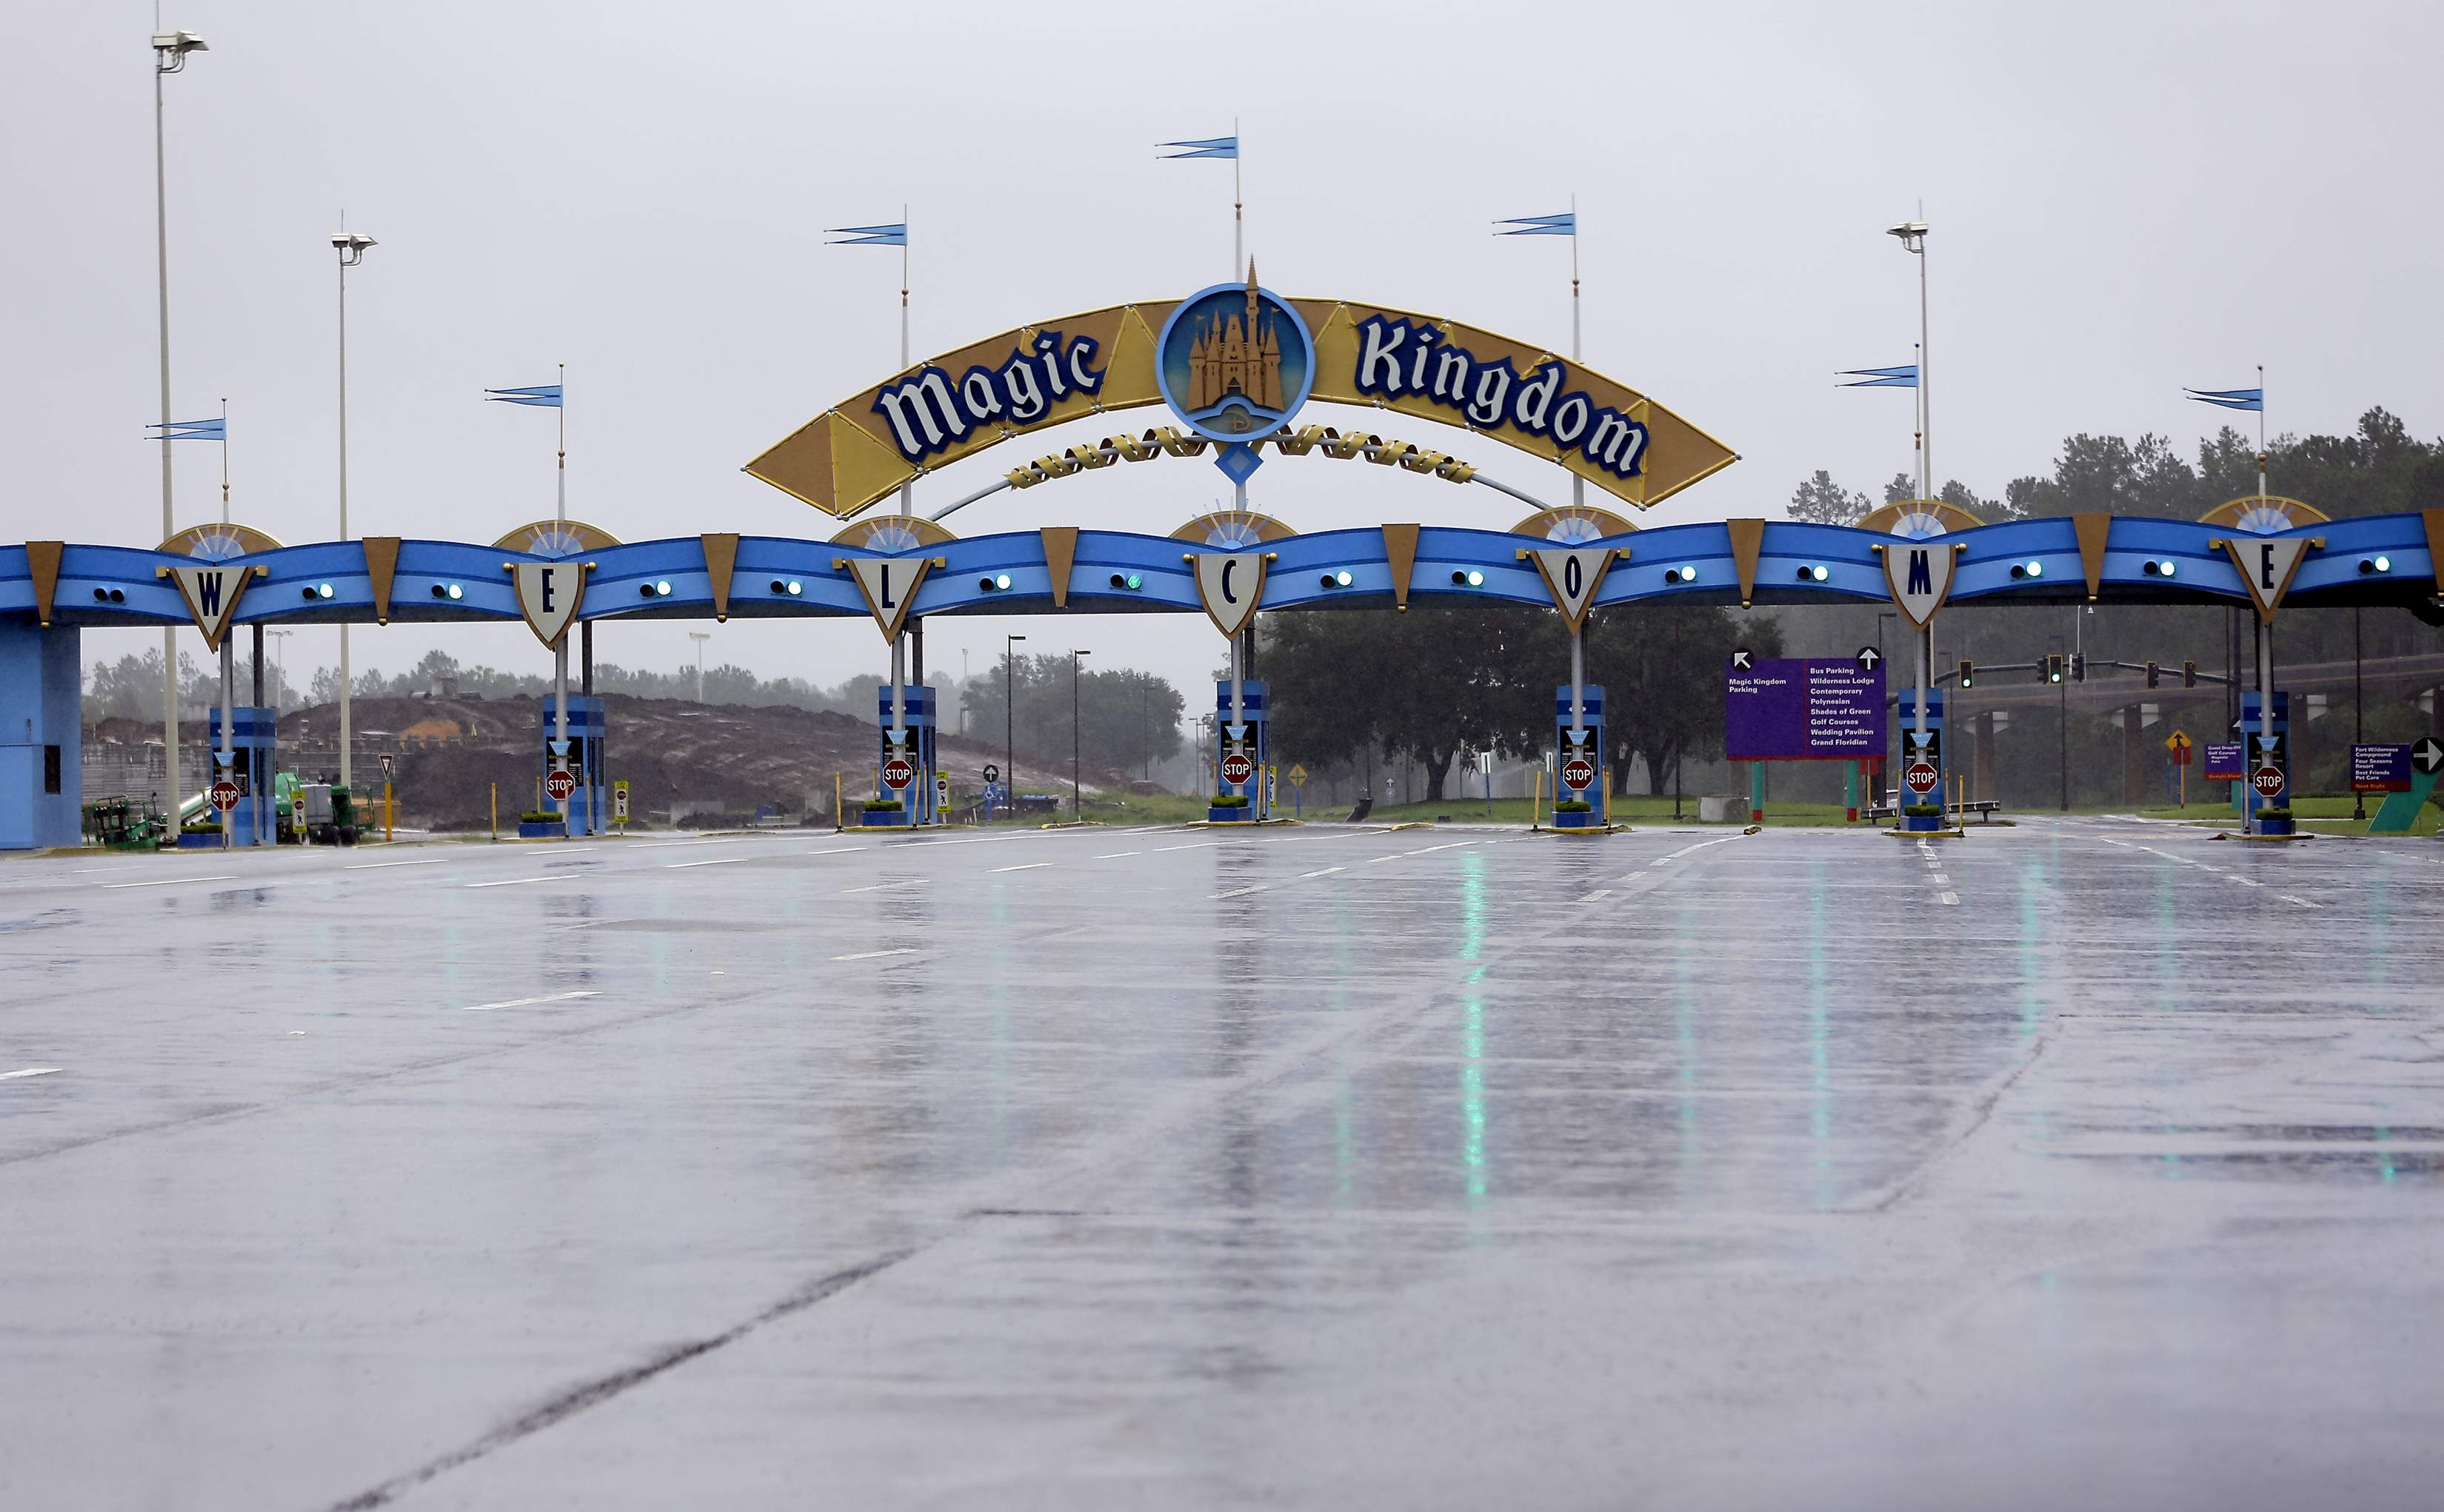 The entrance to the Magic Kingdom at Disney World is empty as the theme park was closed because of Hurricane Irma, Sunday, Sept. 10, 2017, in Lake Buena Vista, Fla. Other tourists attractions including Universal Studios and Sea World were also closed and planned to reopen Tuesday. (AP Photo/John Raoux)